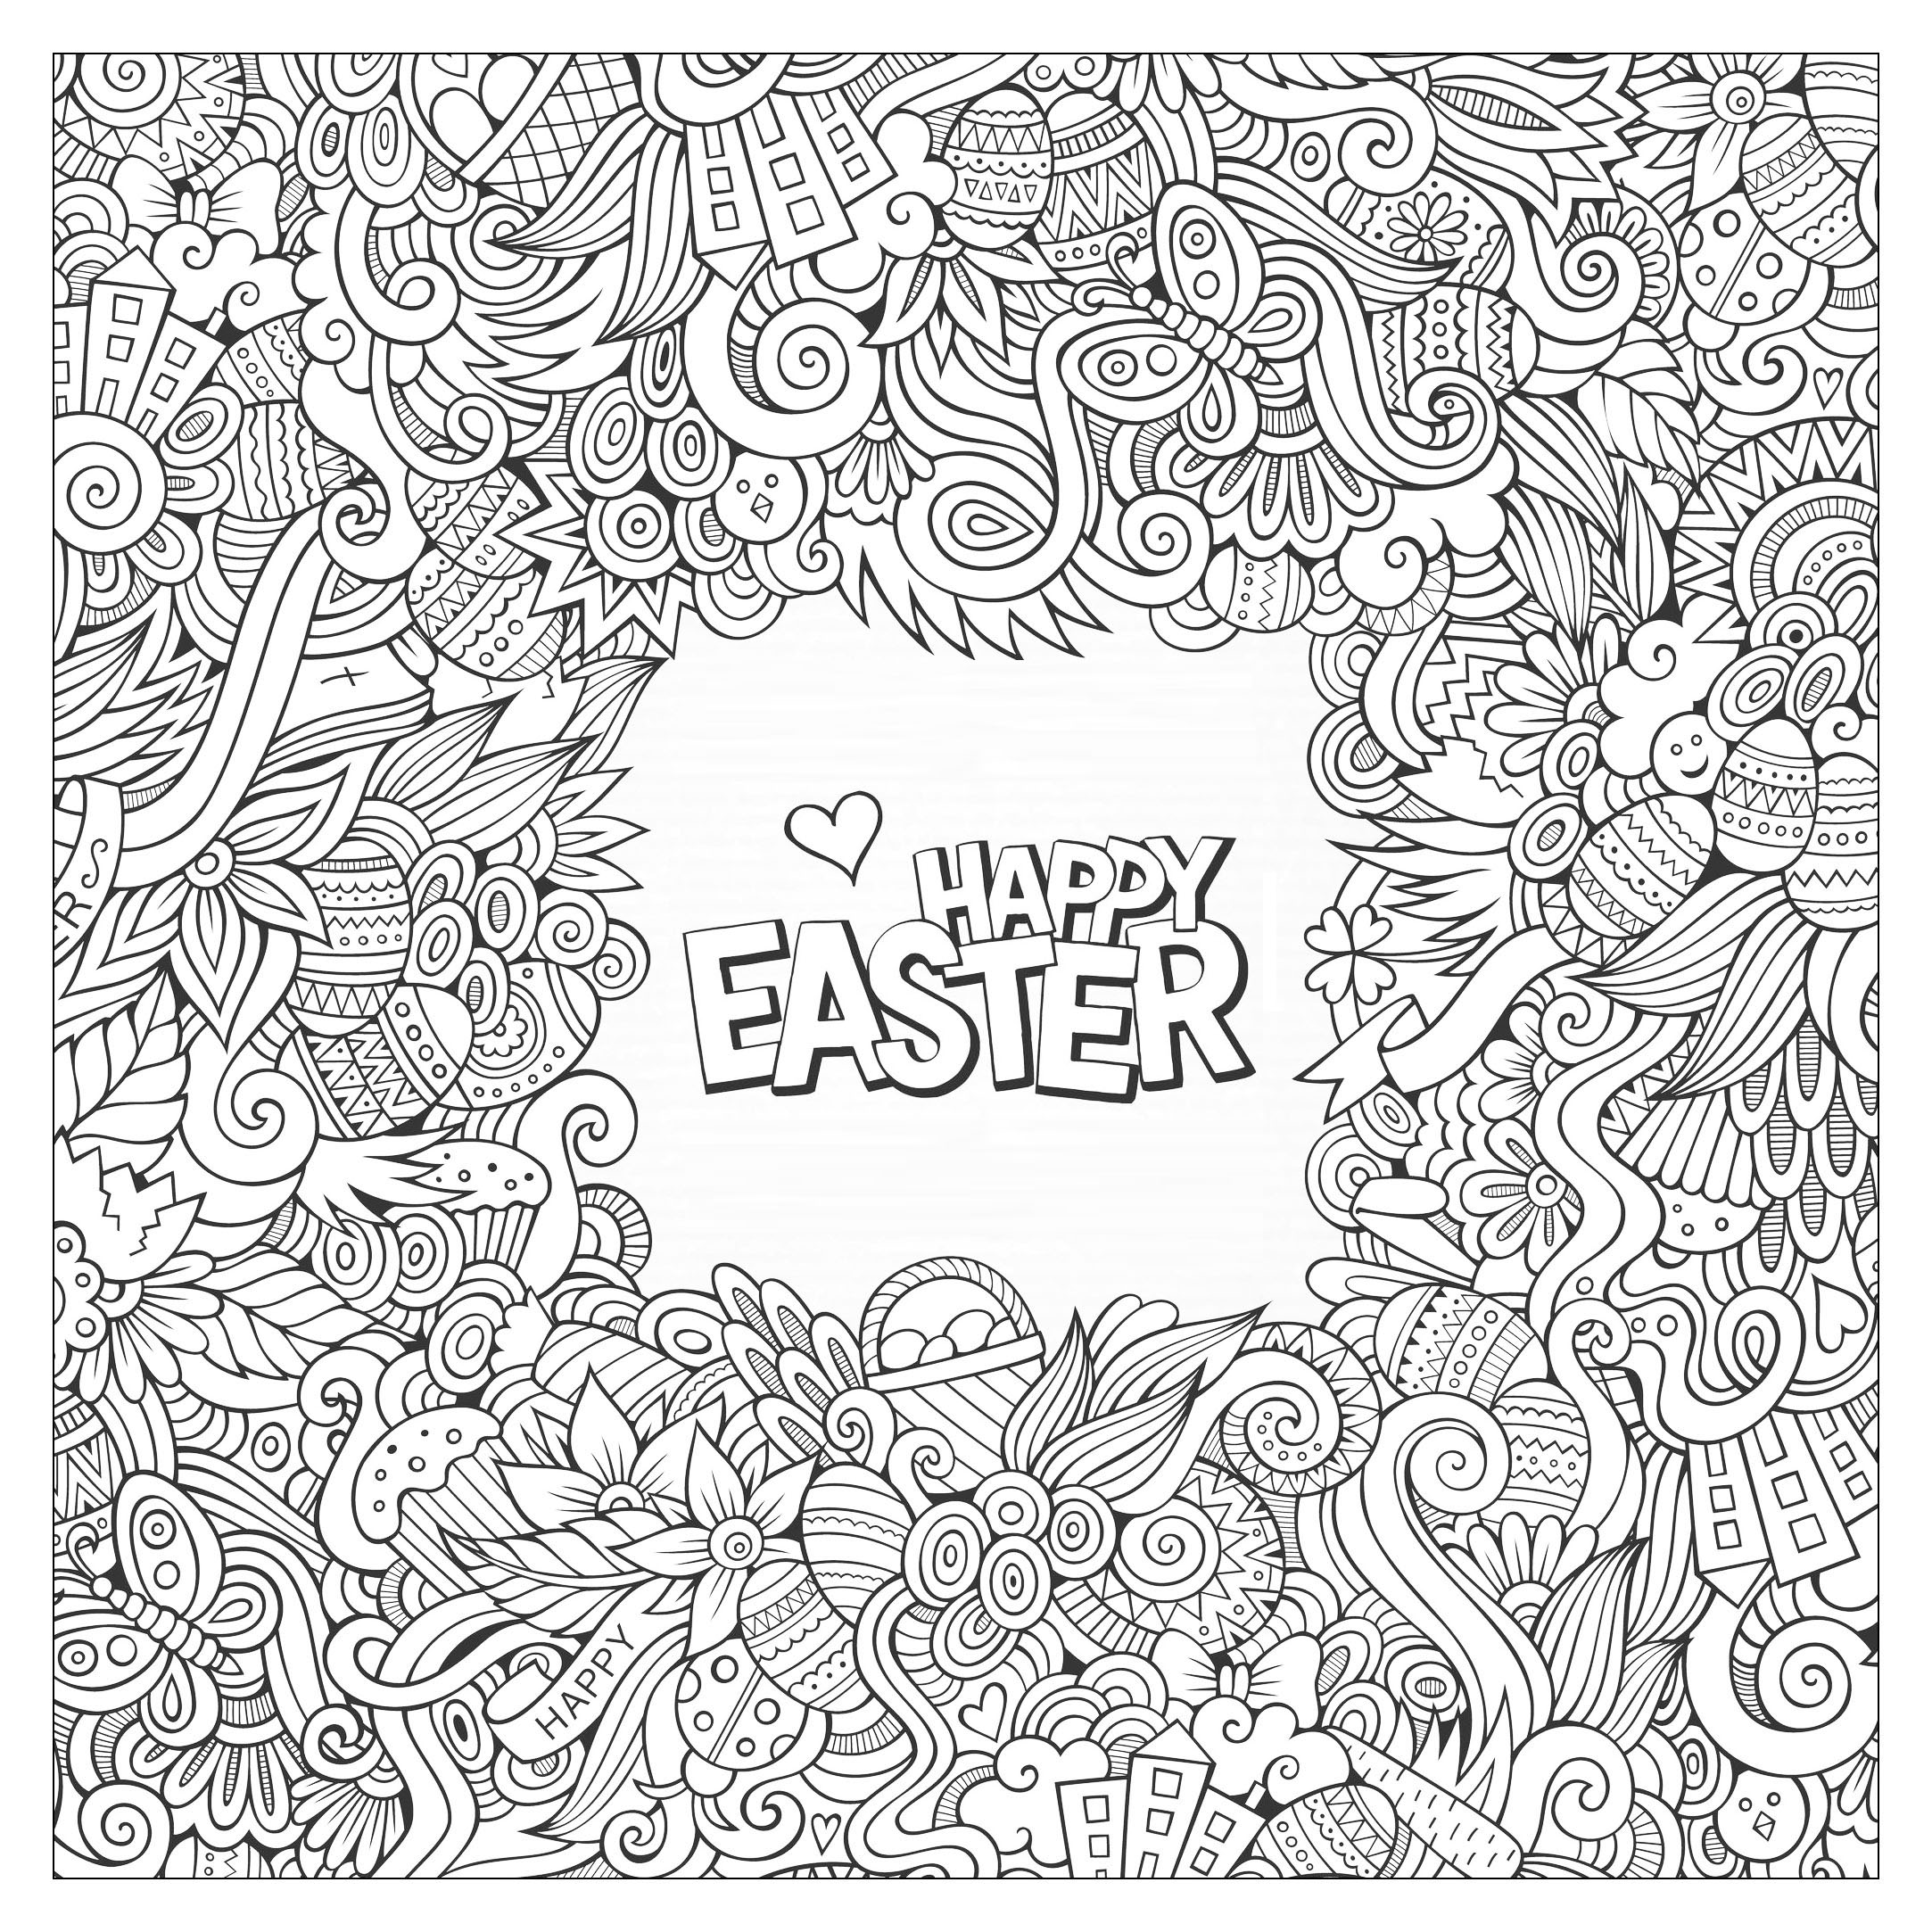 Easter greeting card to print and color for kids and adults from